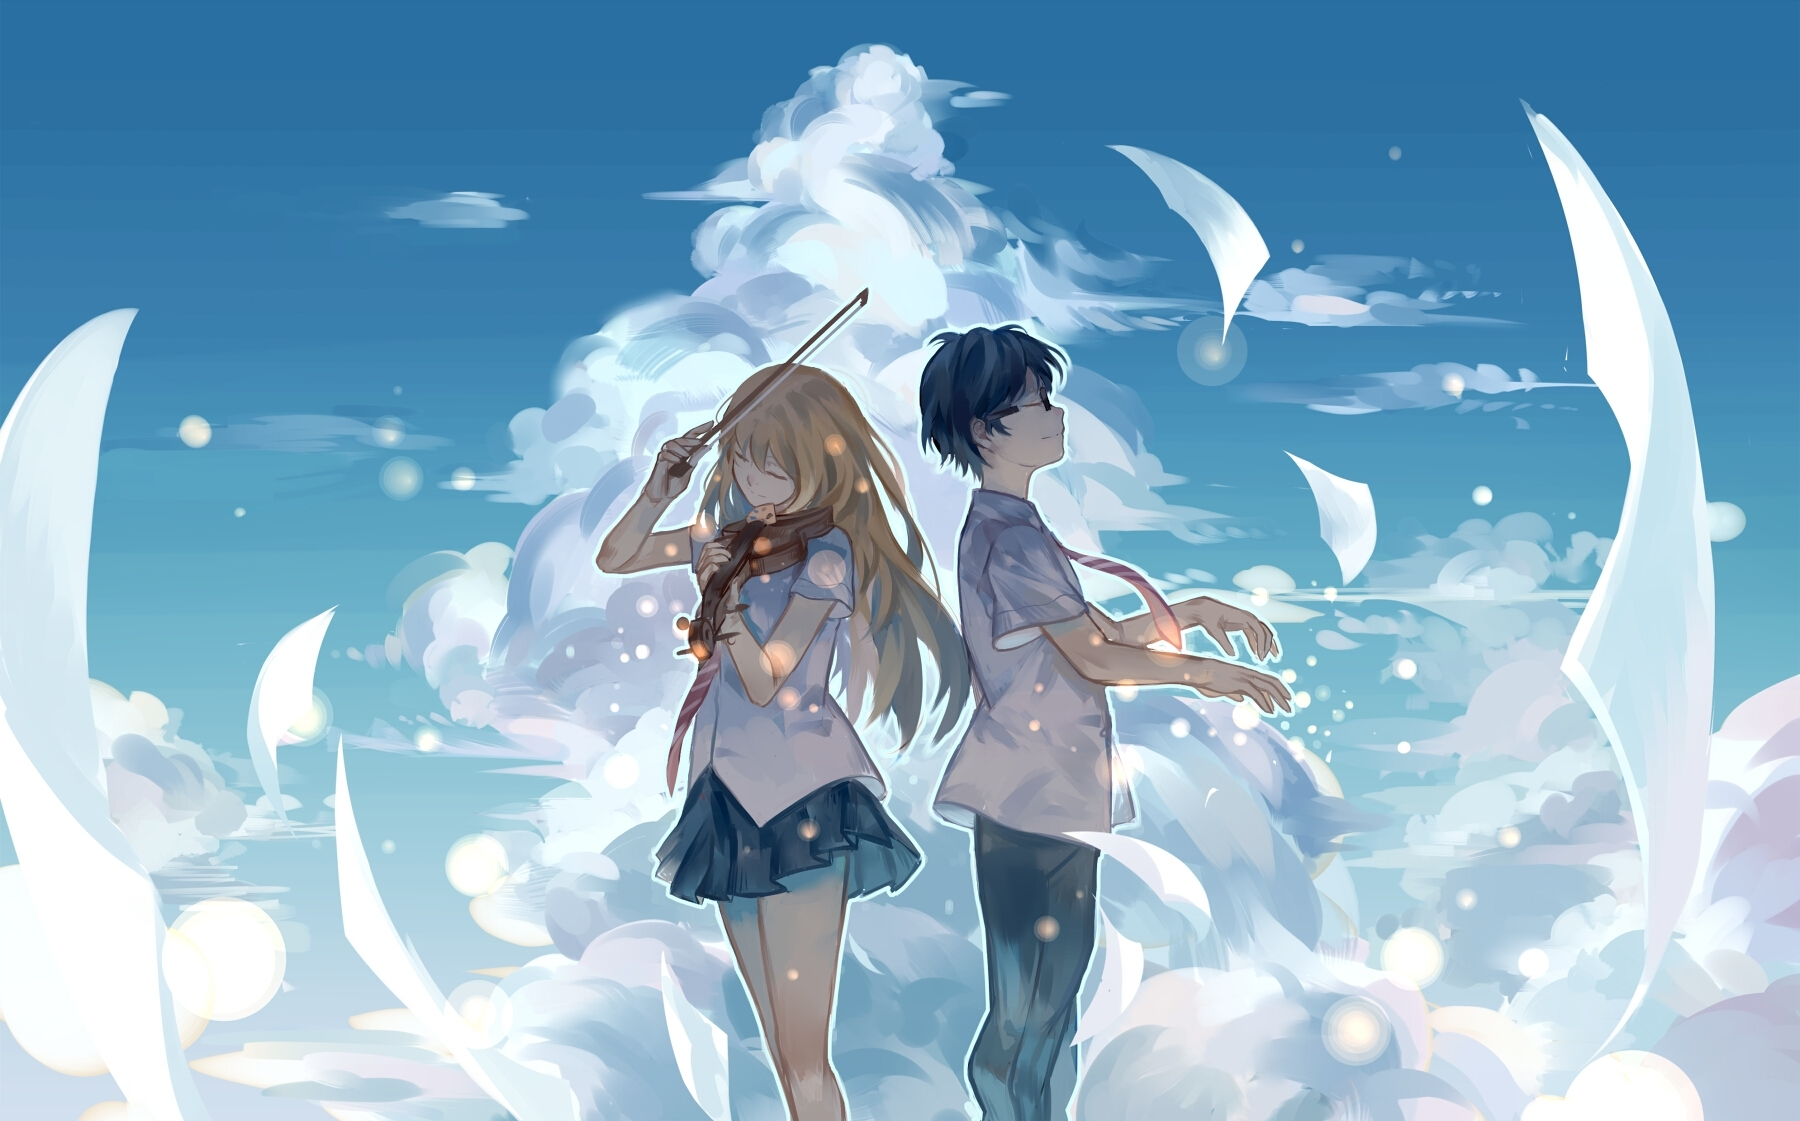 shigatsu wa kimi no uso (your lie in april) - zerochan anime image board